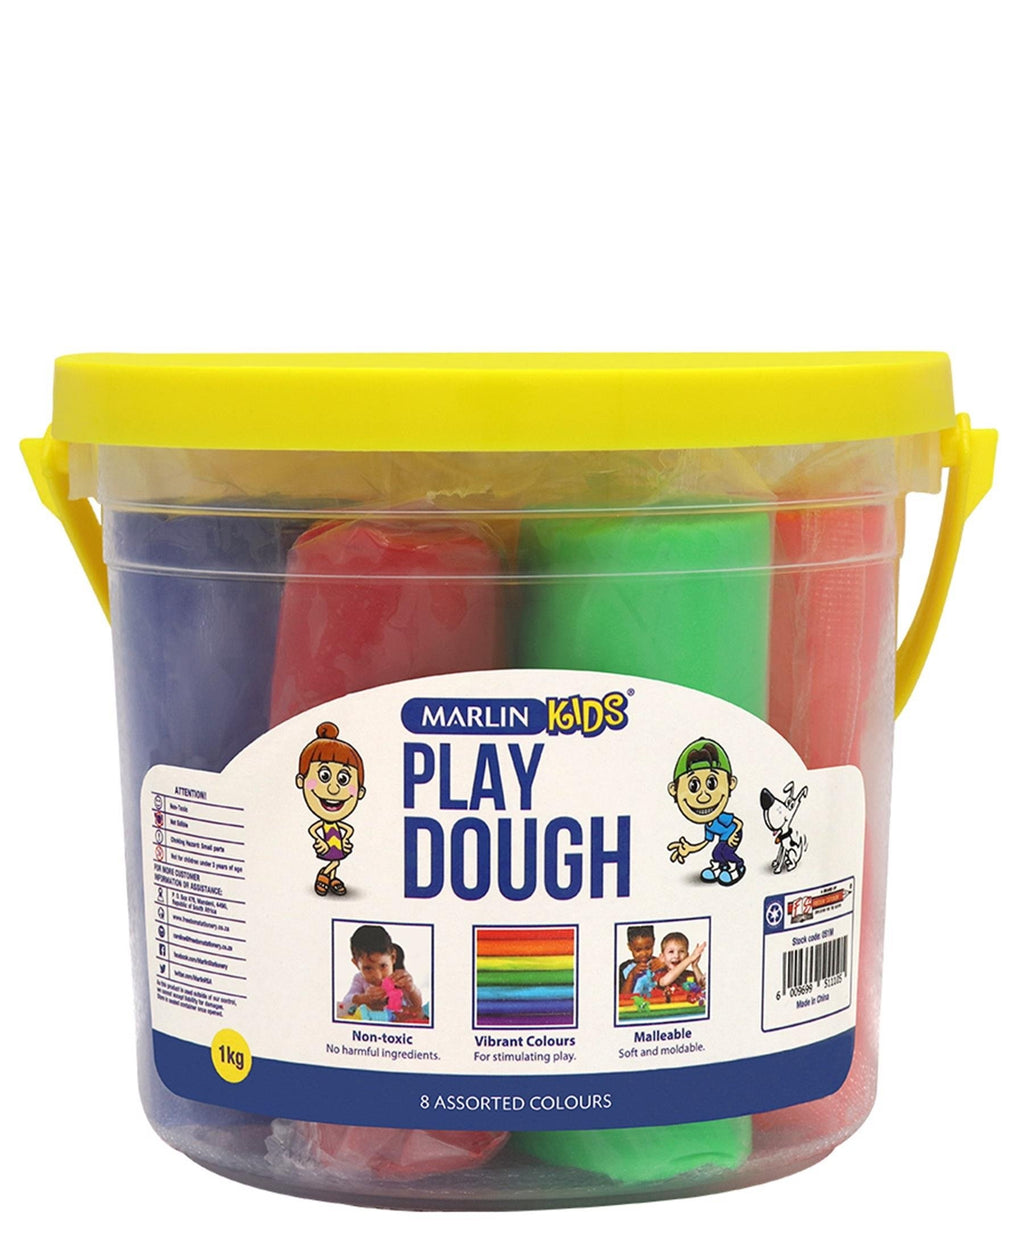 Marlin 8 Assorted Colours Play Dough Bucket - Multi